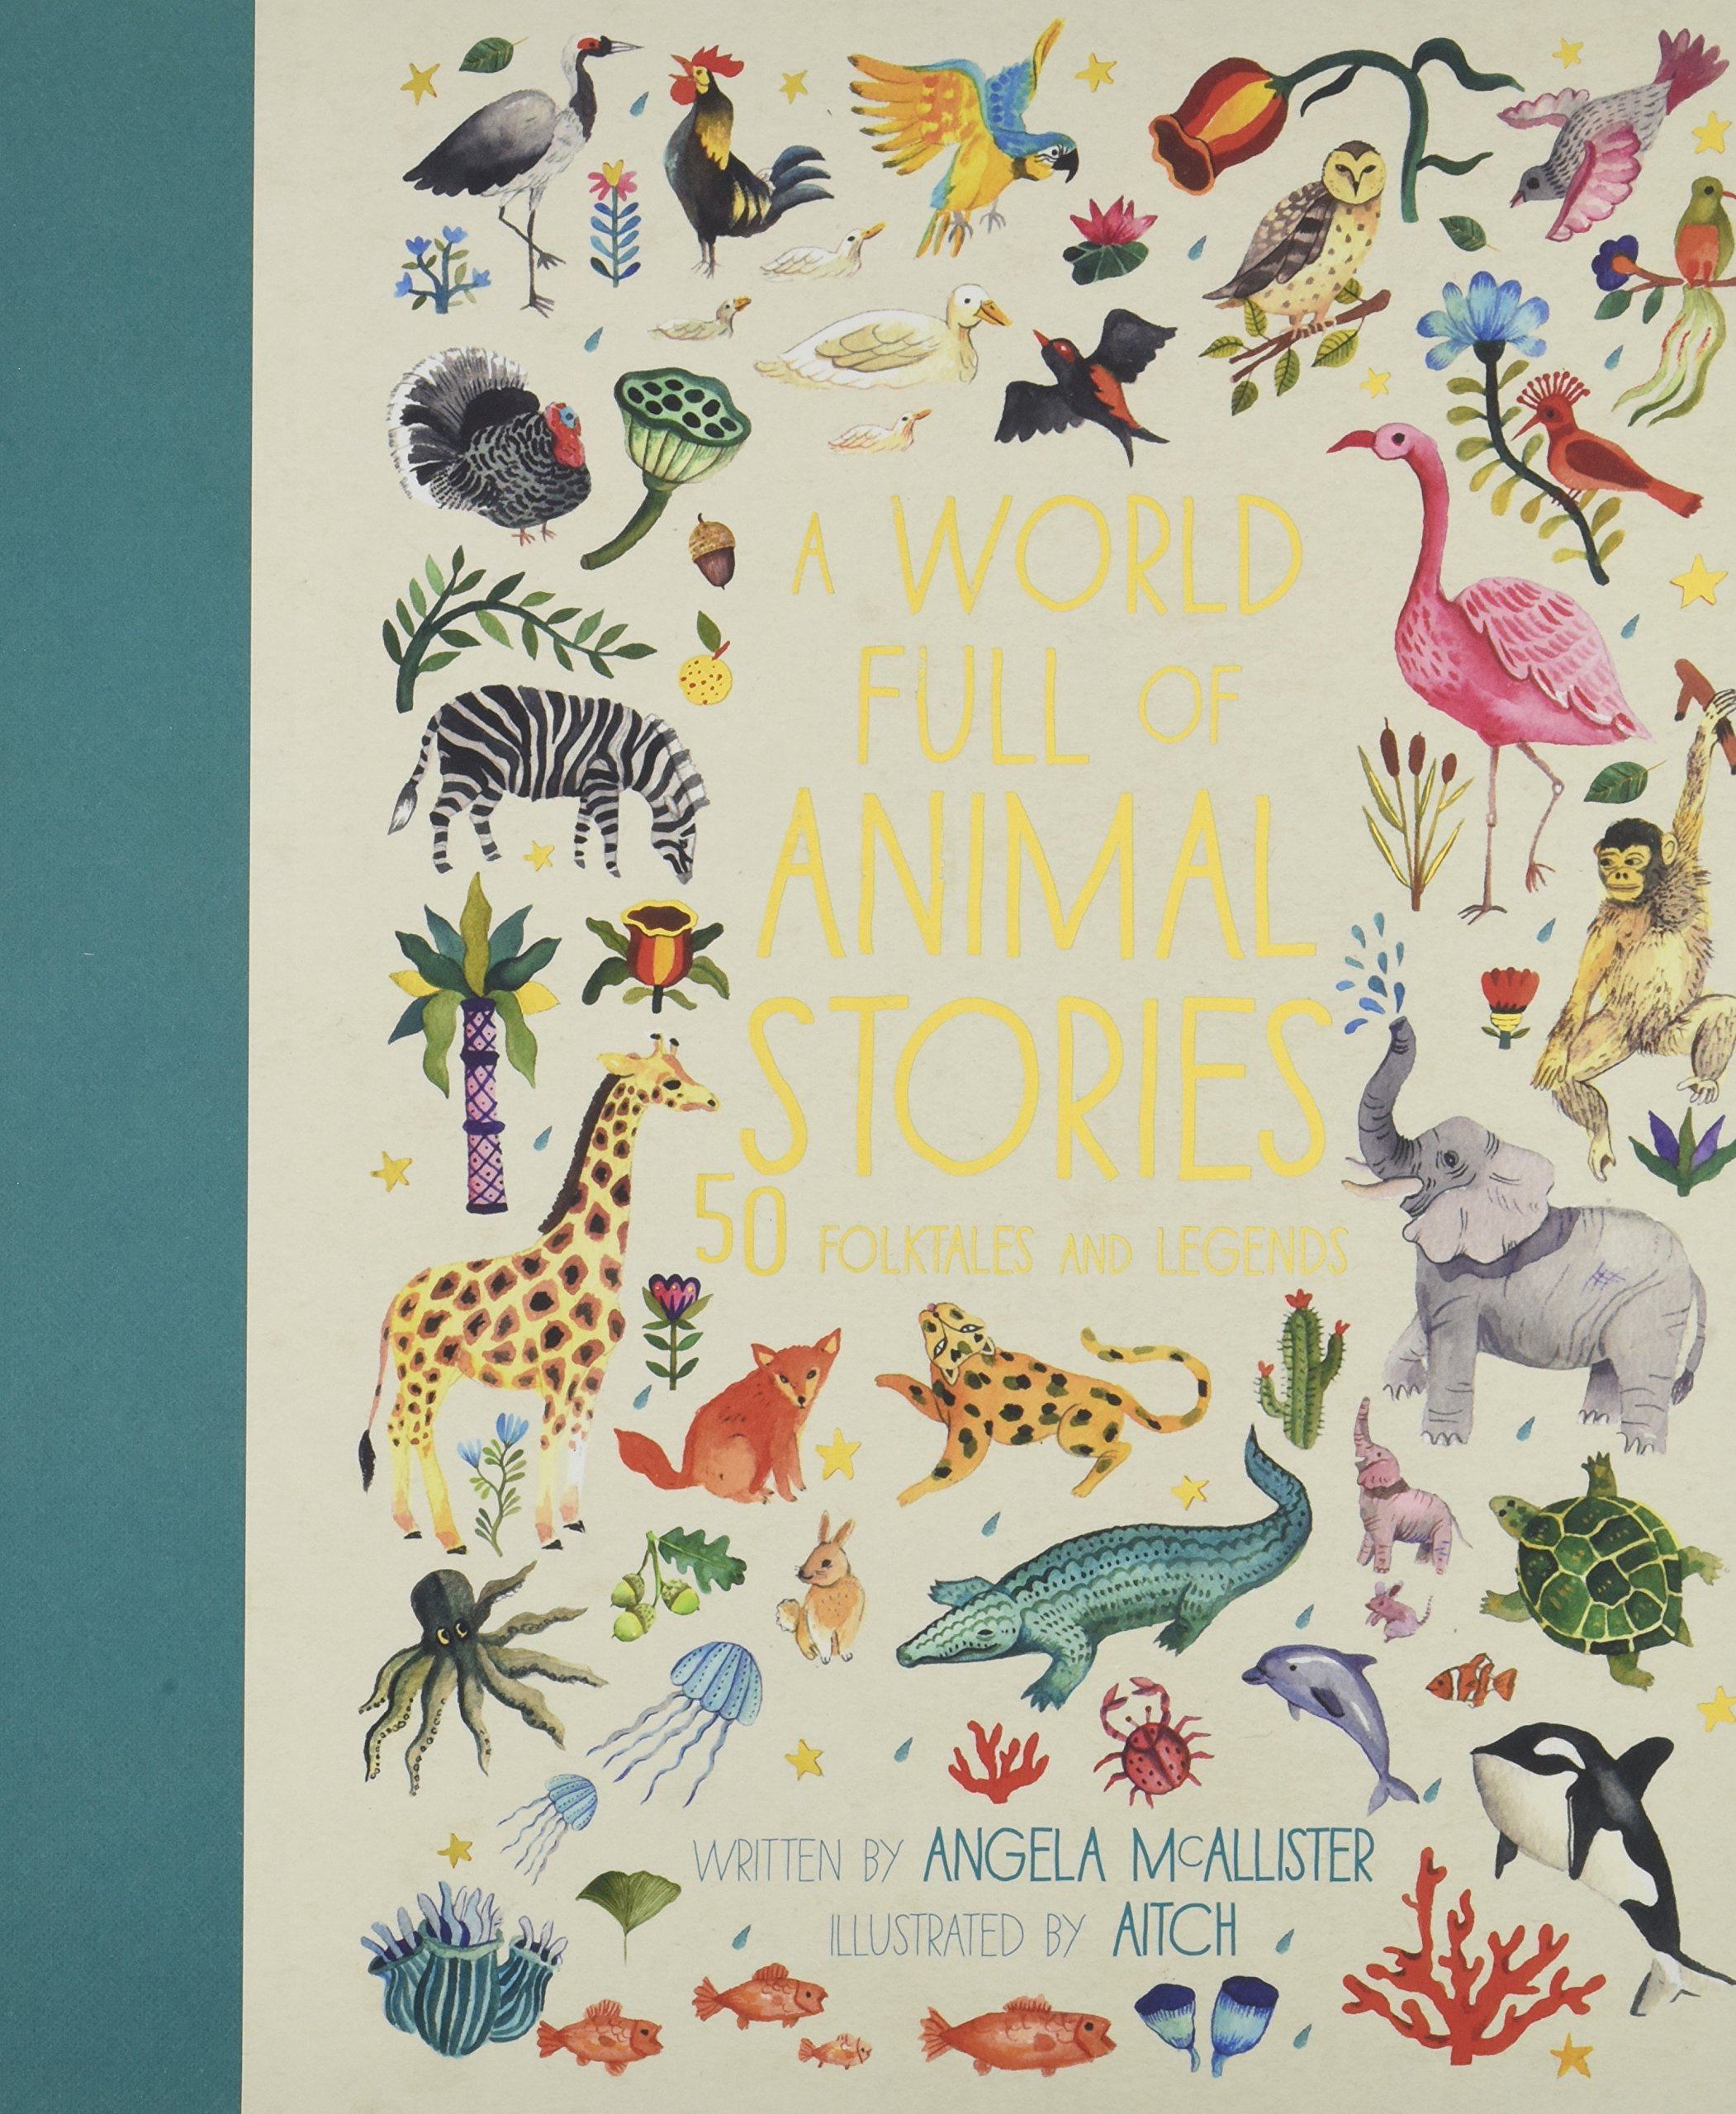 A World Full of Animal Stories US: 50 favourite animal folk tales, myths and legends